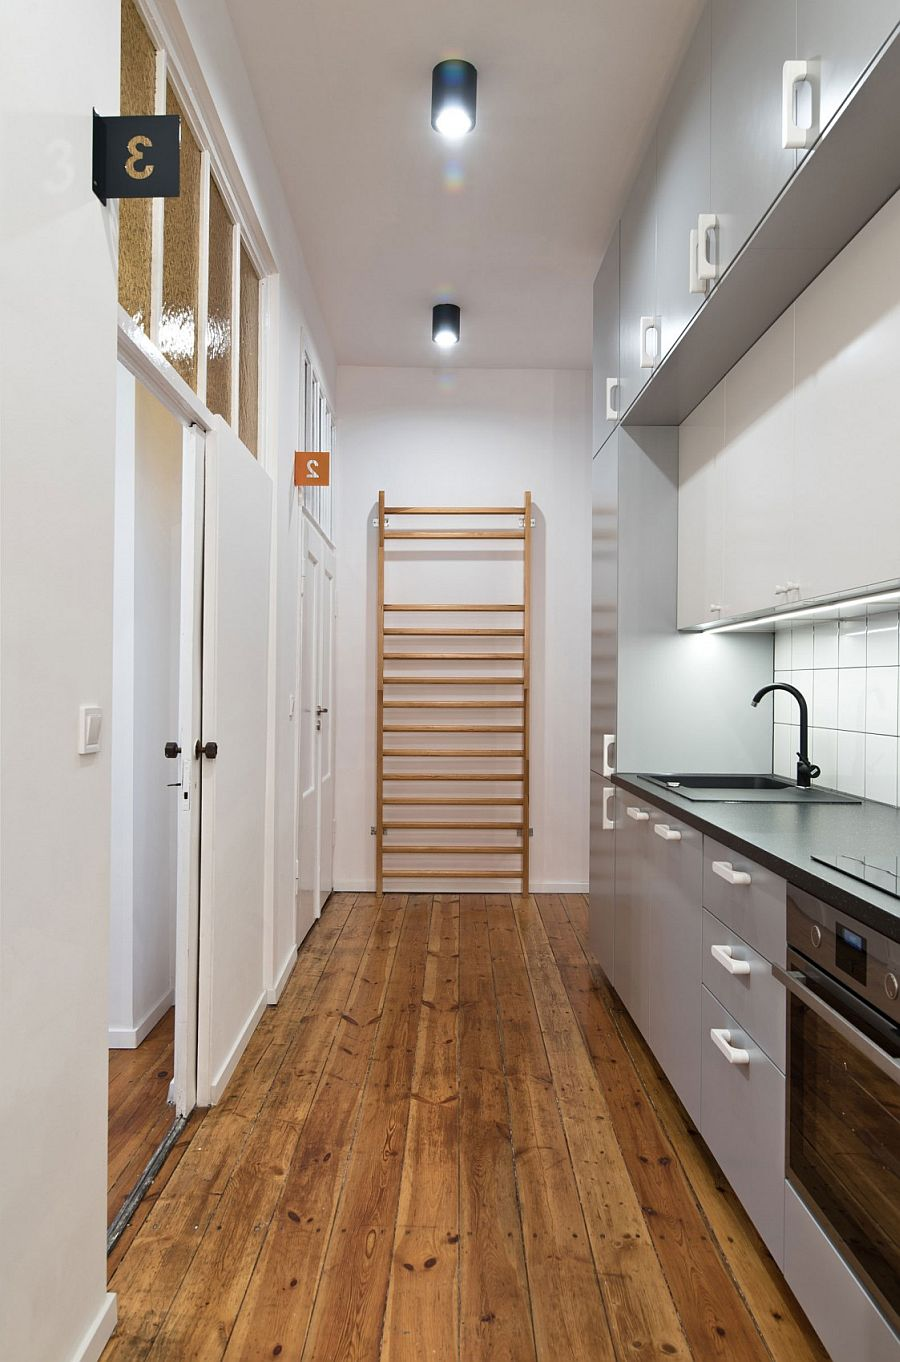 30 Small Kitchen Lighting Ideas that Blend Form with ... on narrow sunroom ideas, narrow patio ideas, narrow family room ideas, narrow bedroom ideas, narrow dining room ideas,